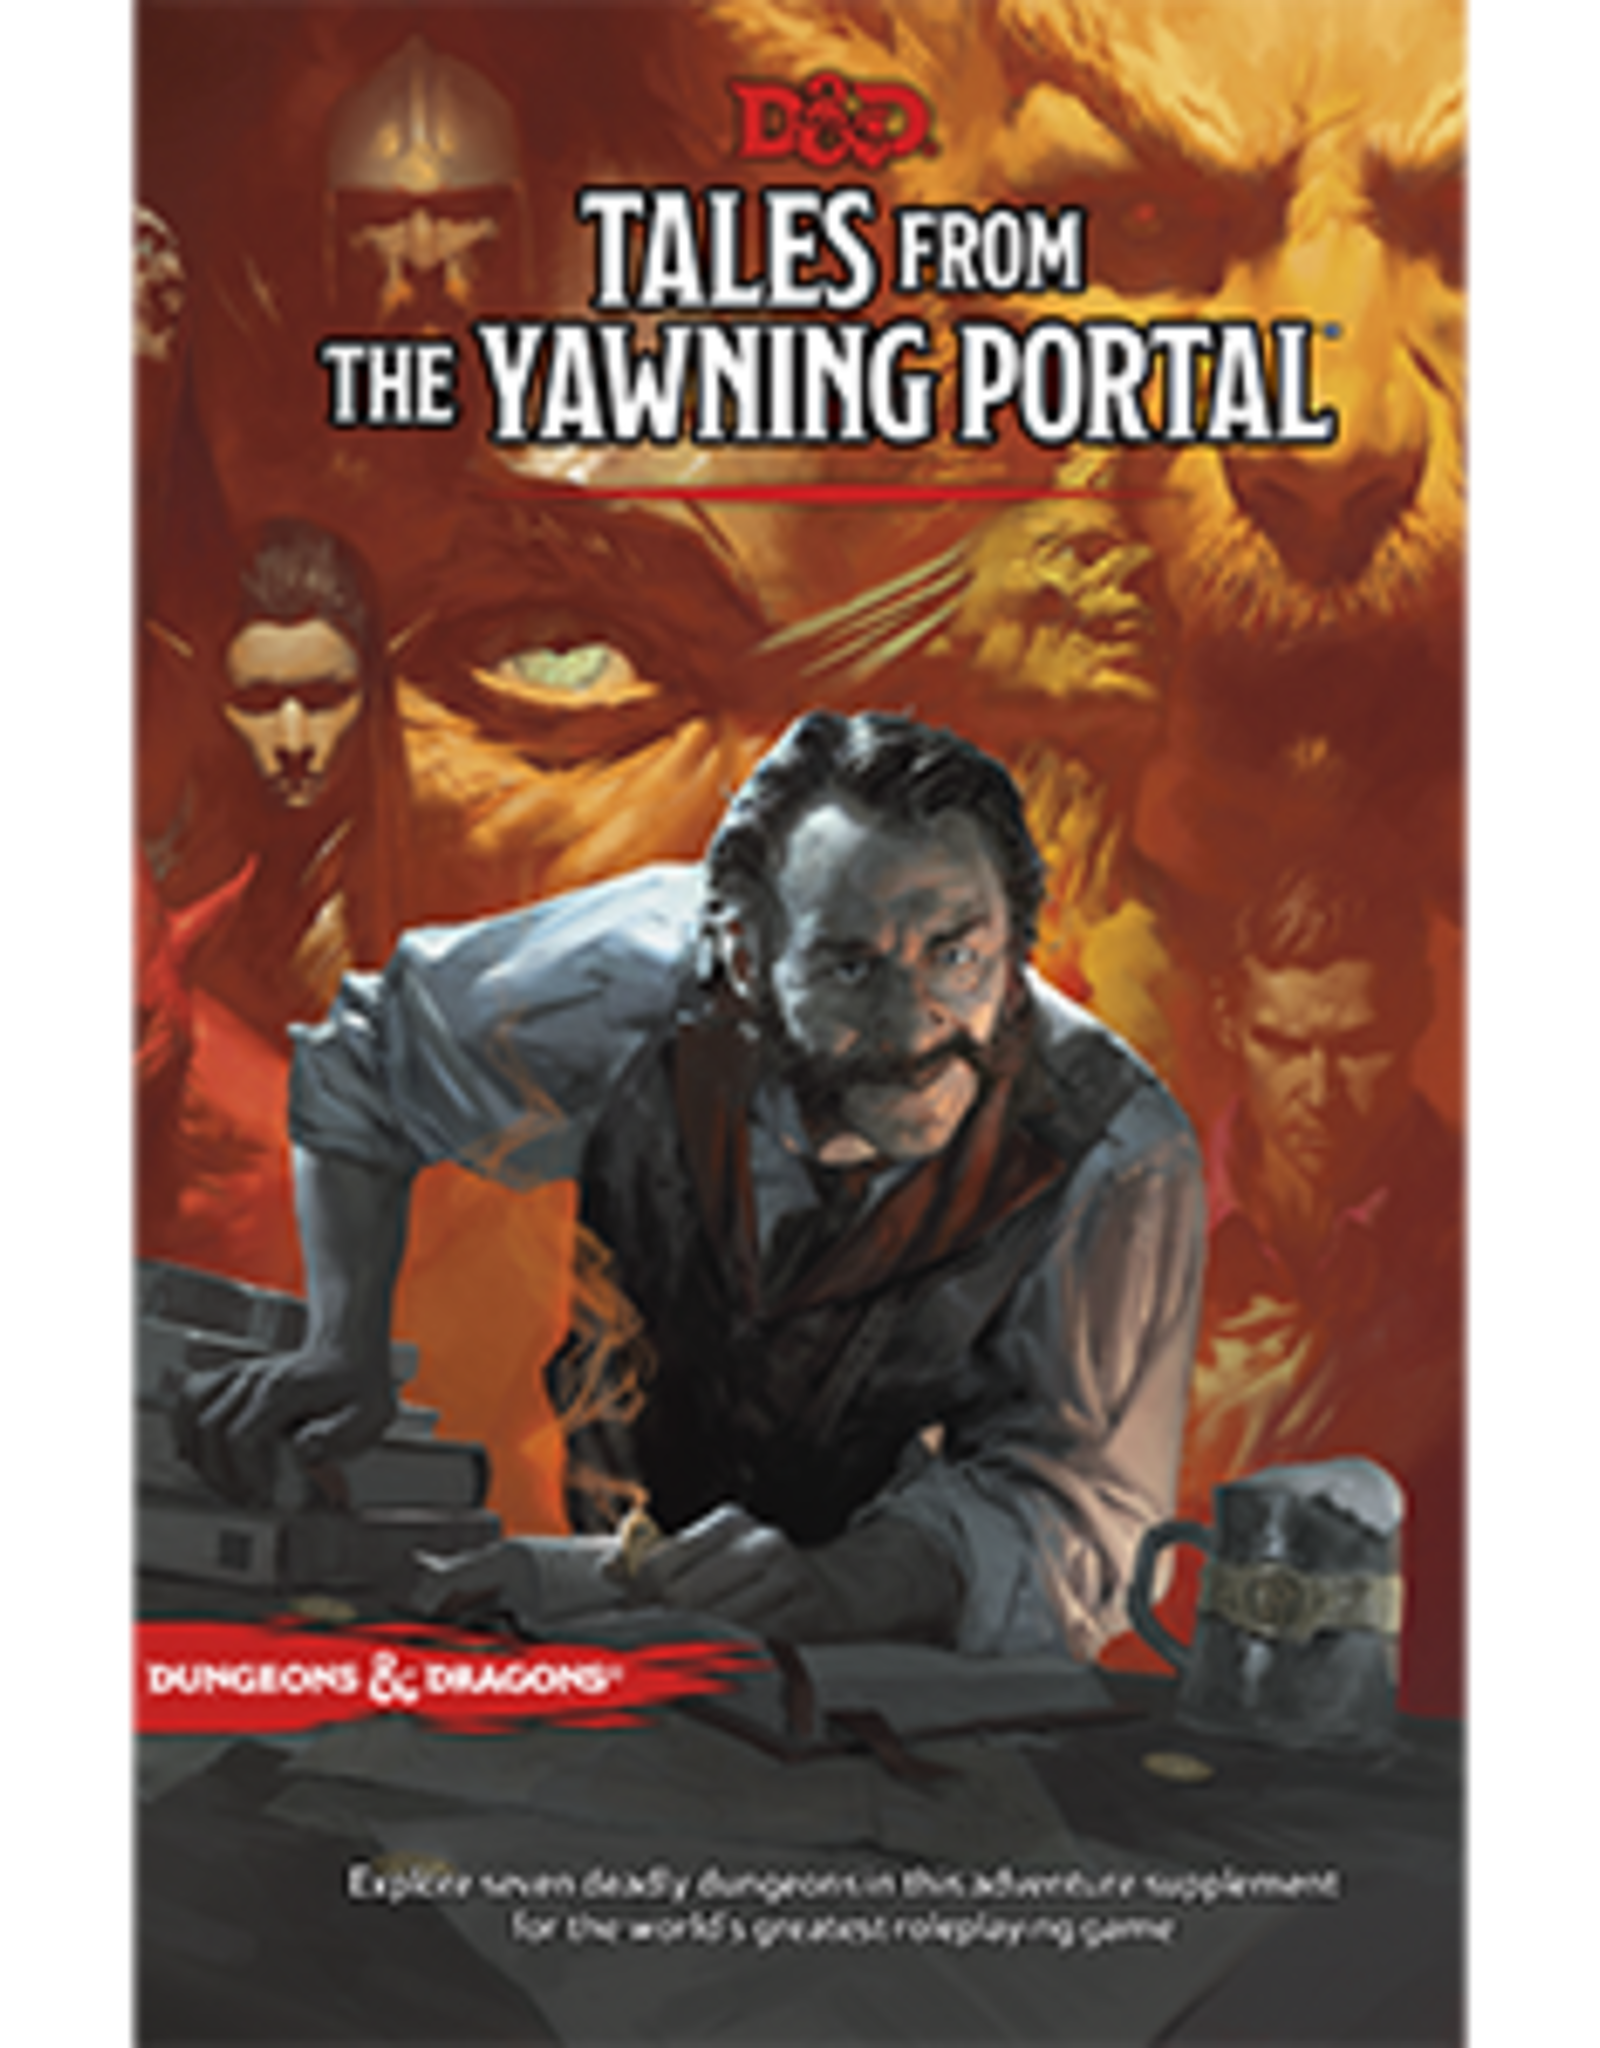 D&D 5th Edition: Tales from the Yawning Portal